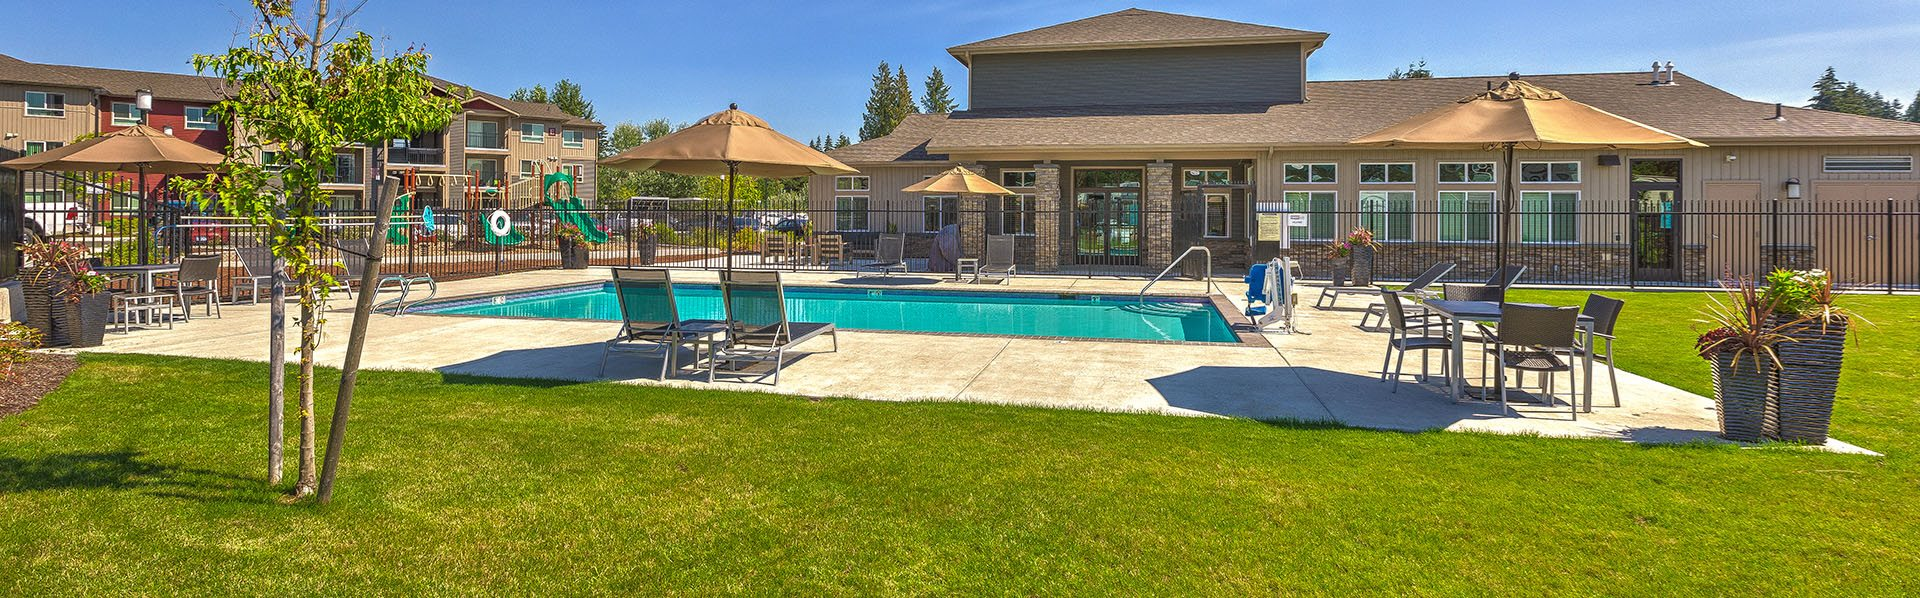 Swimming Pool | South Hill by Vintage in Puyallup, WA